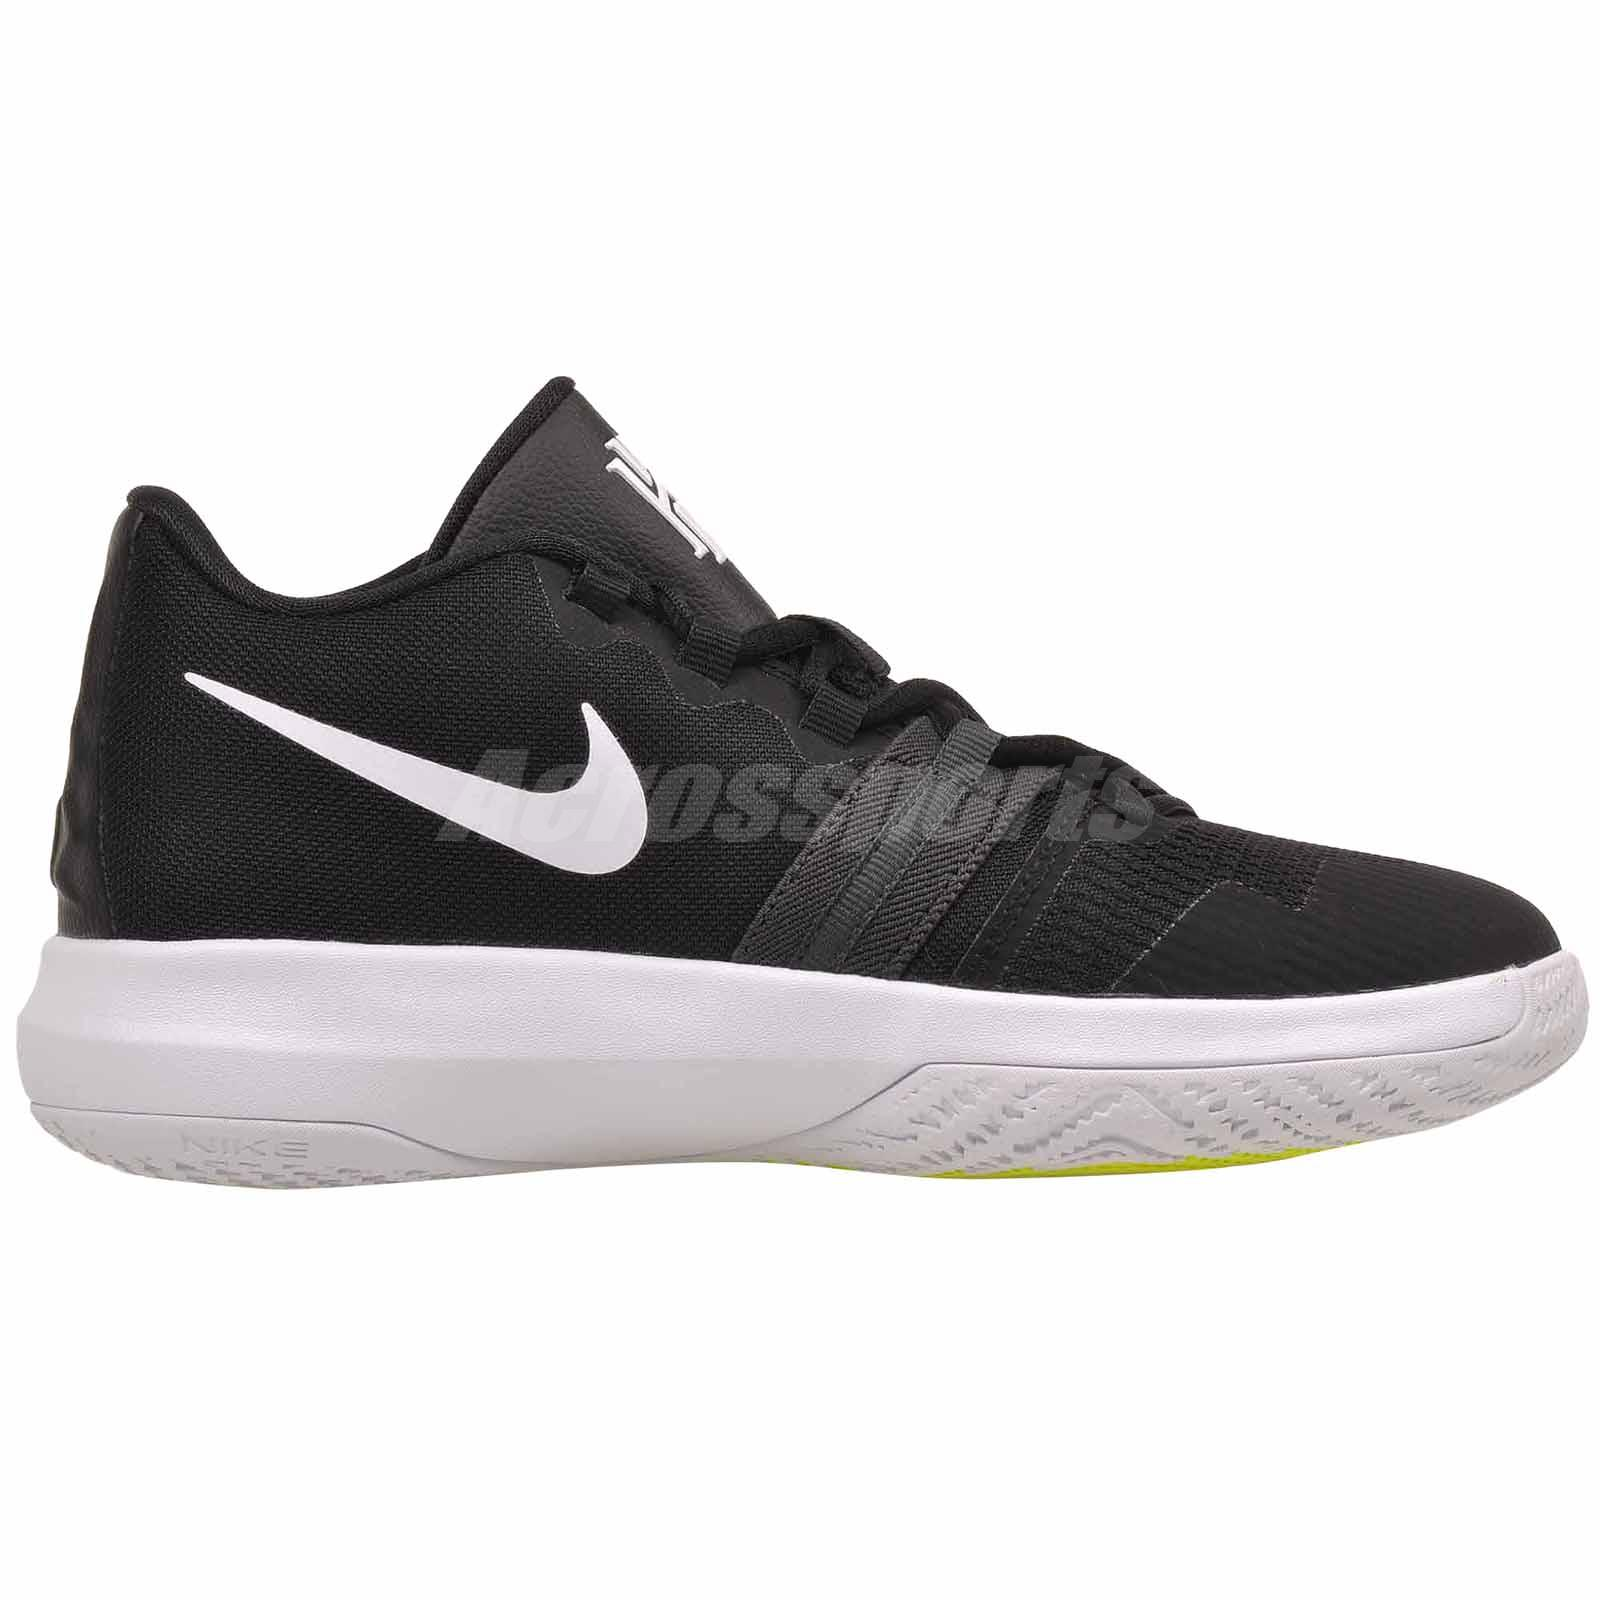 45cc9c0c551 Nike Kyrie Flytrap GS Basketball Kids Youth Shoes Black White AA1154 ...